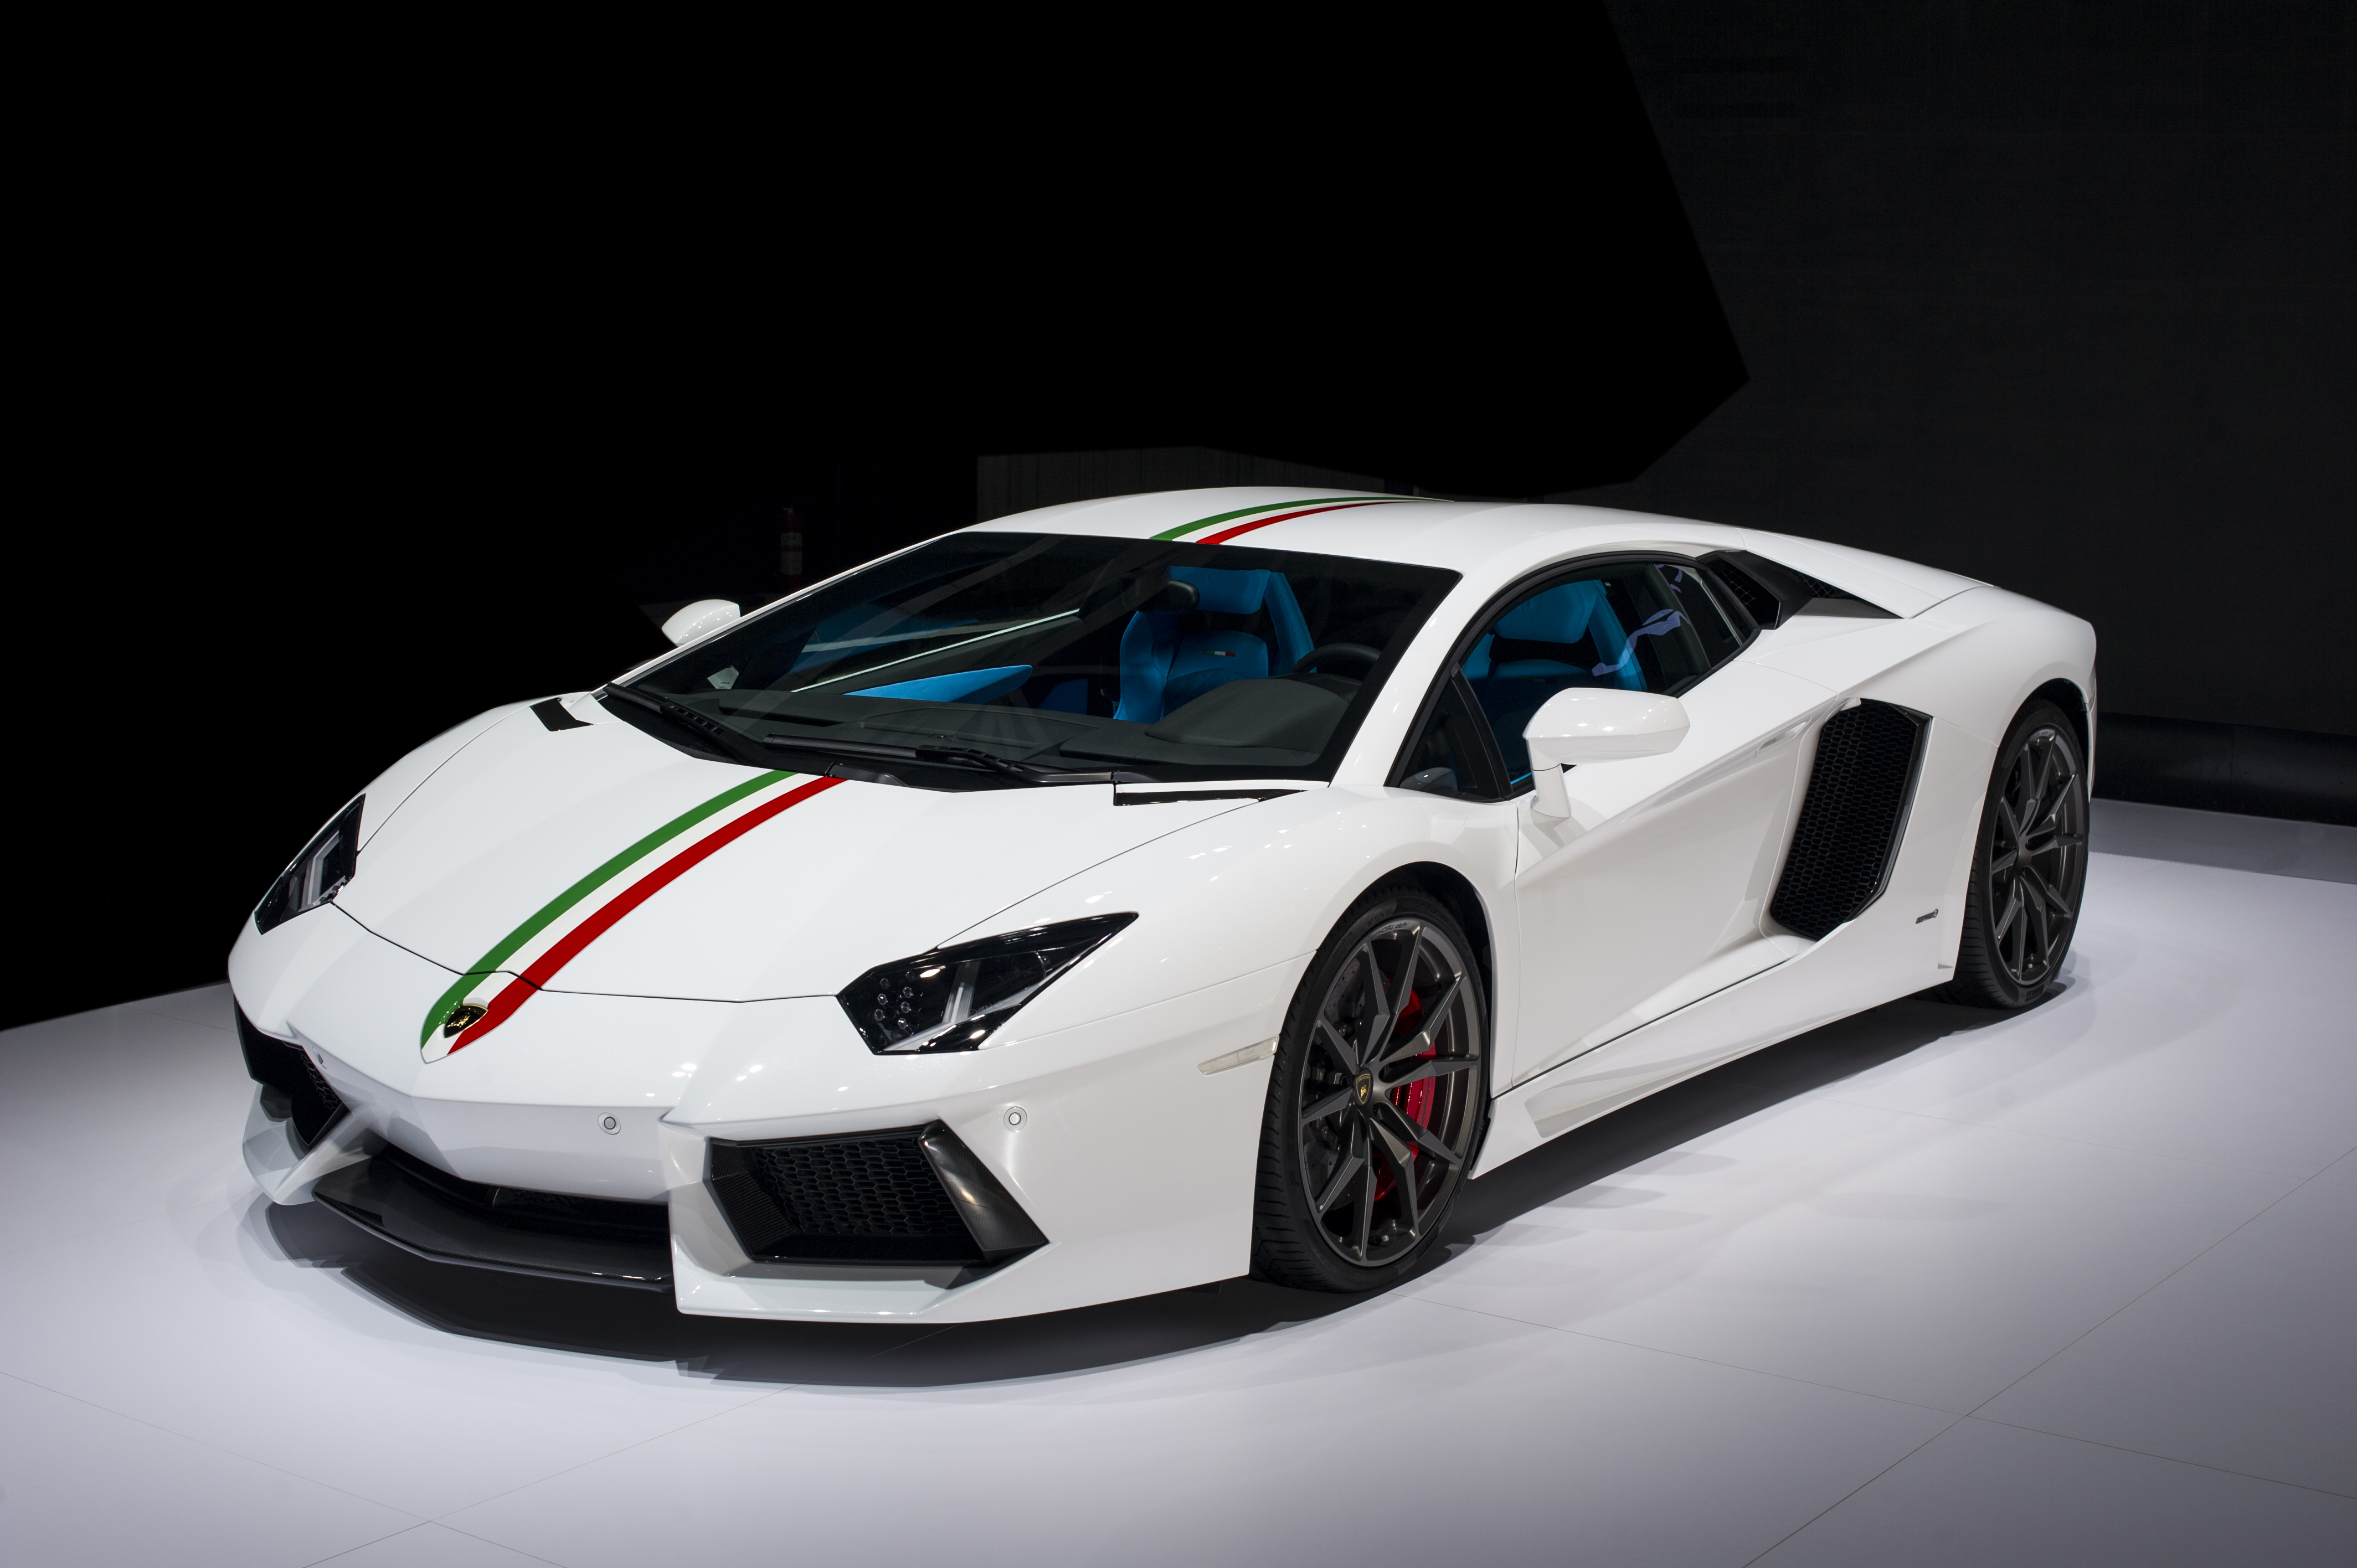 car aventador news limited speed hamann aventado lamborghini cost reviews insurance by top cars and